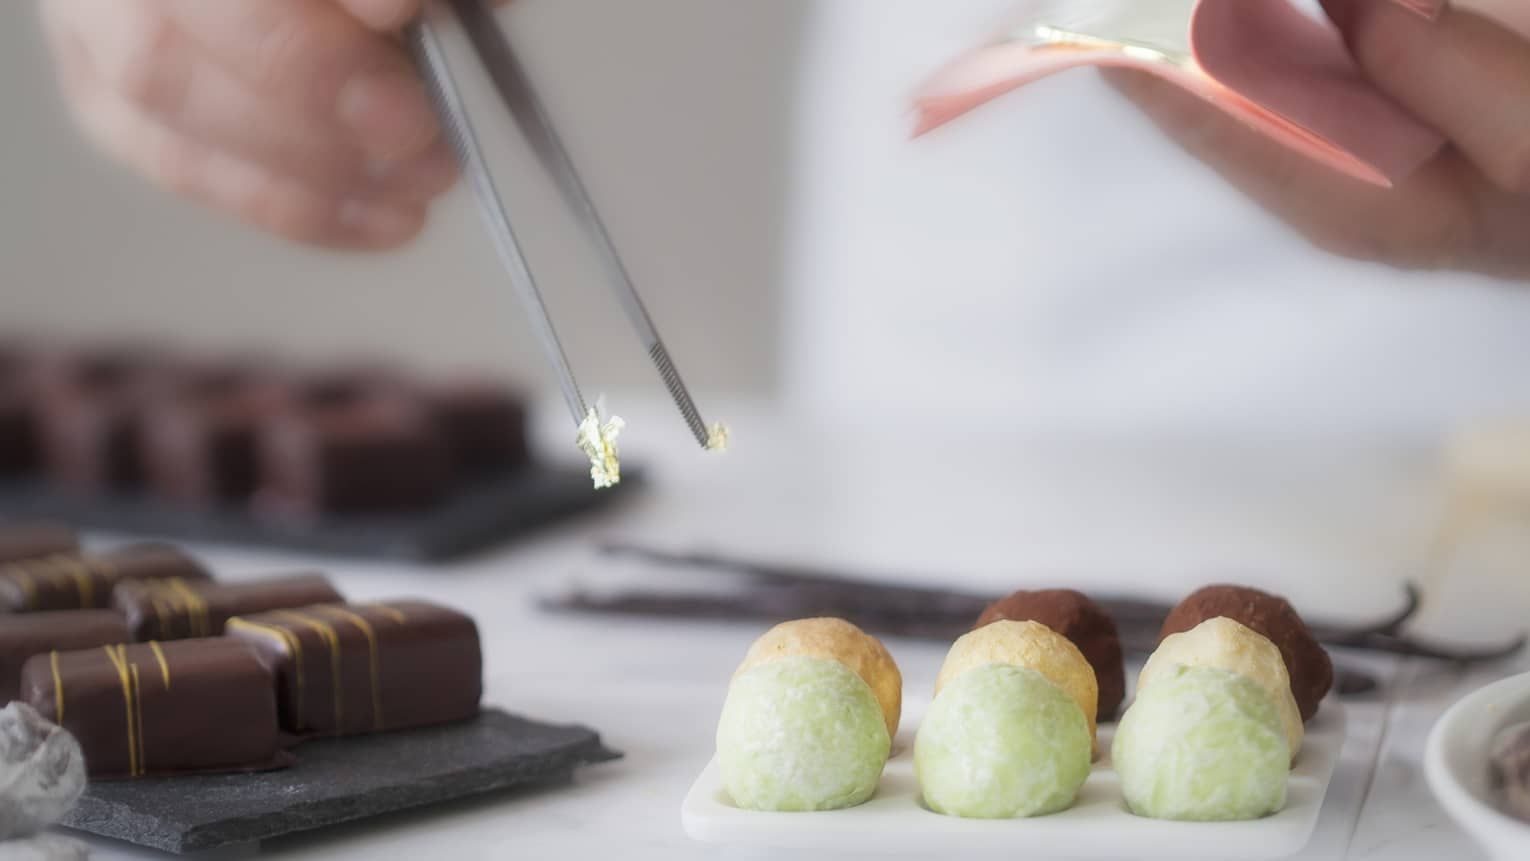 A close up of a male chef's hands using tongs to place various chocolates on parchment paper